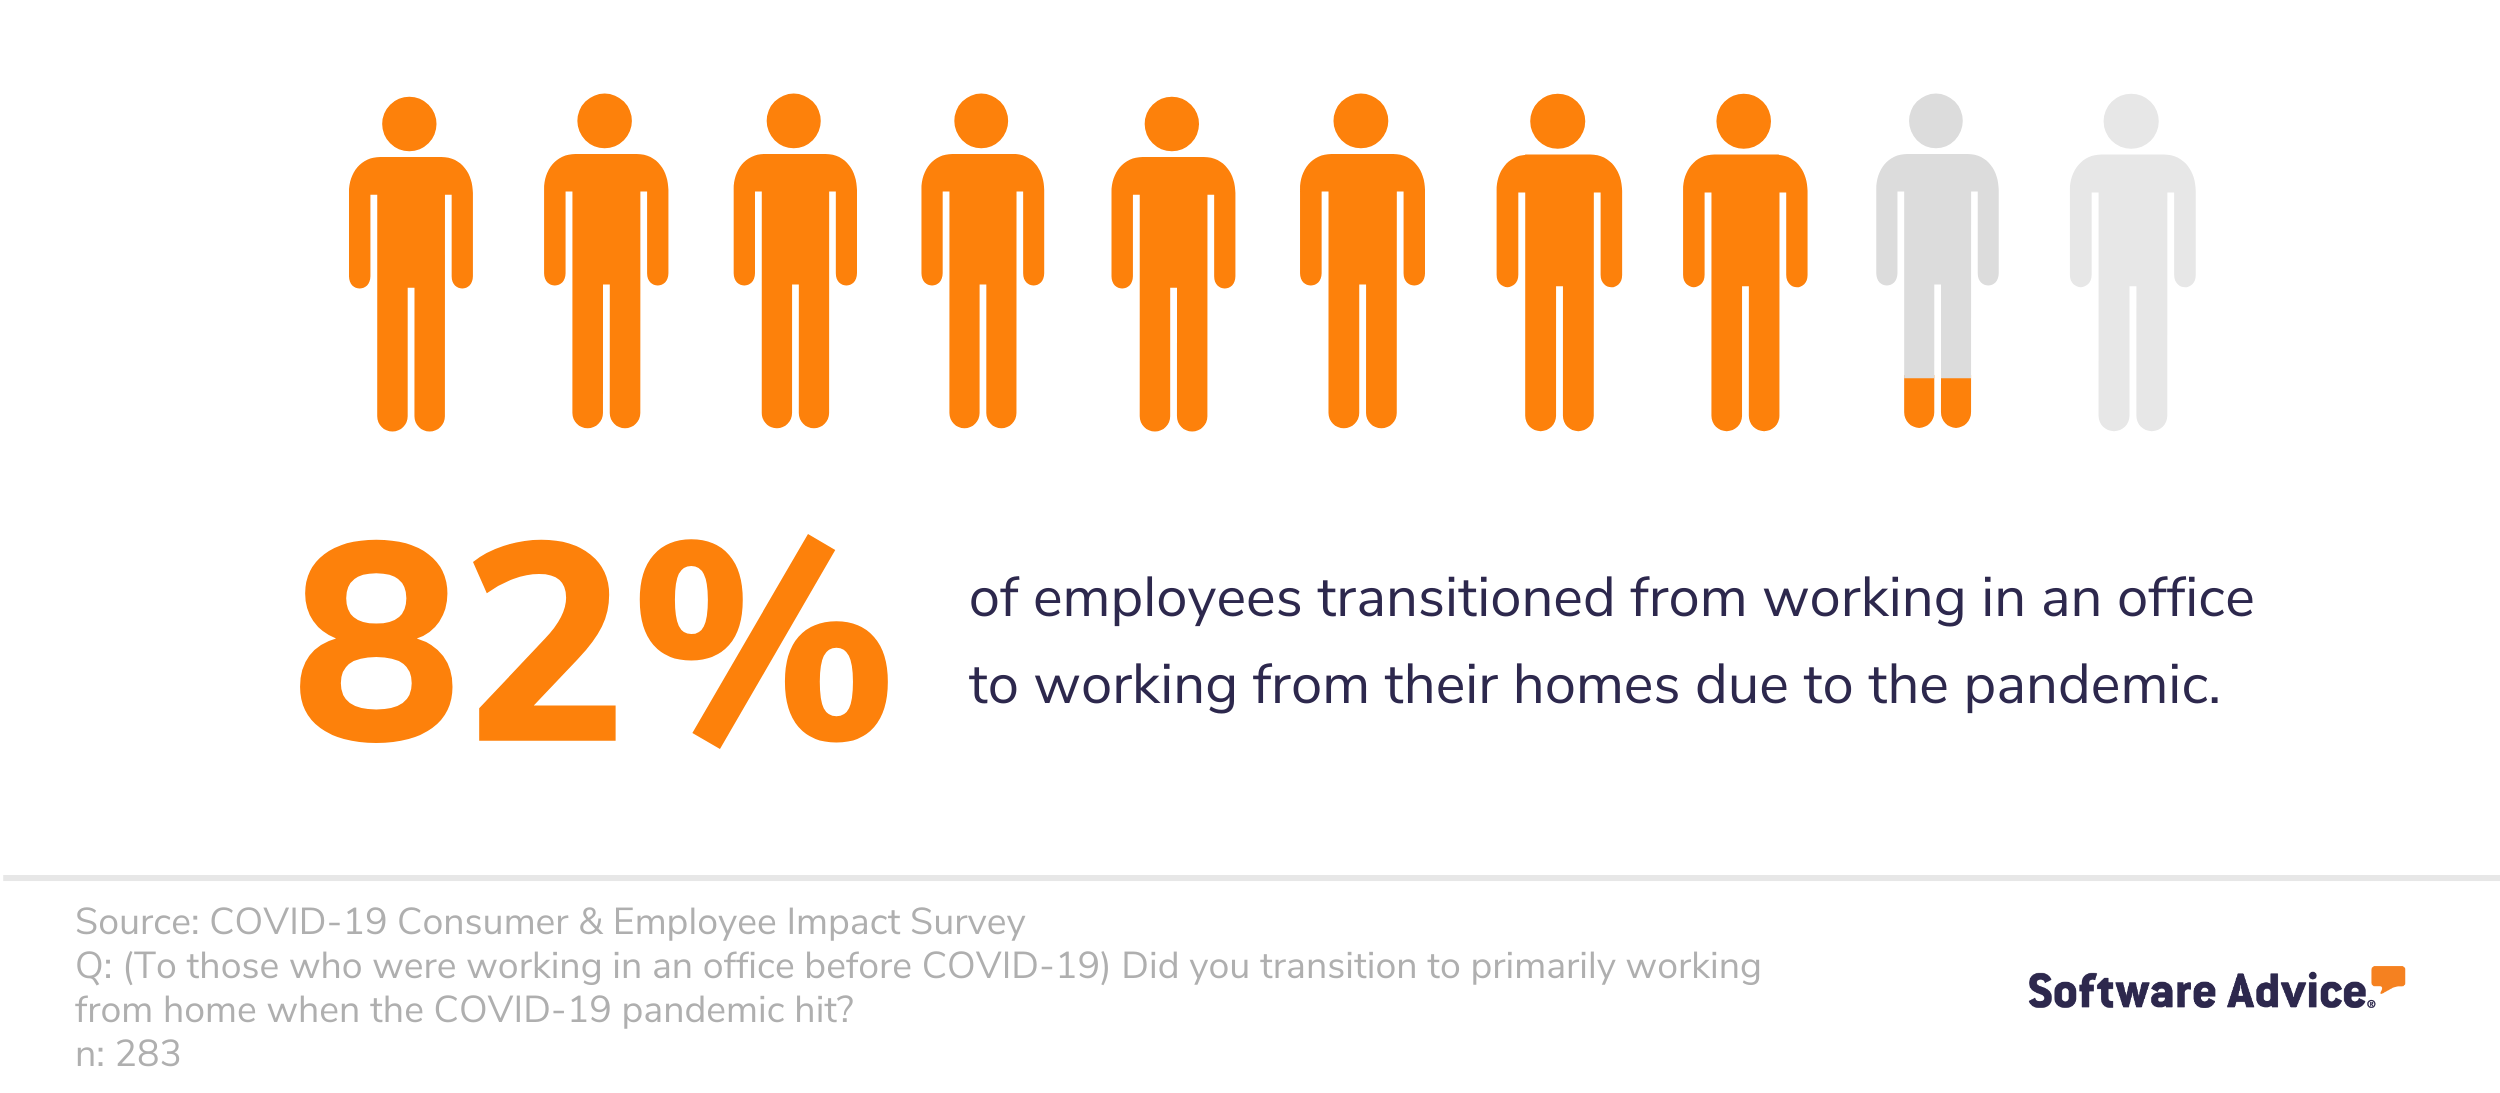 82% of employees transitioned to working from home during COVID